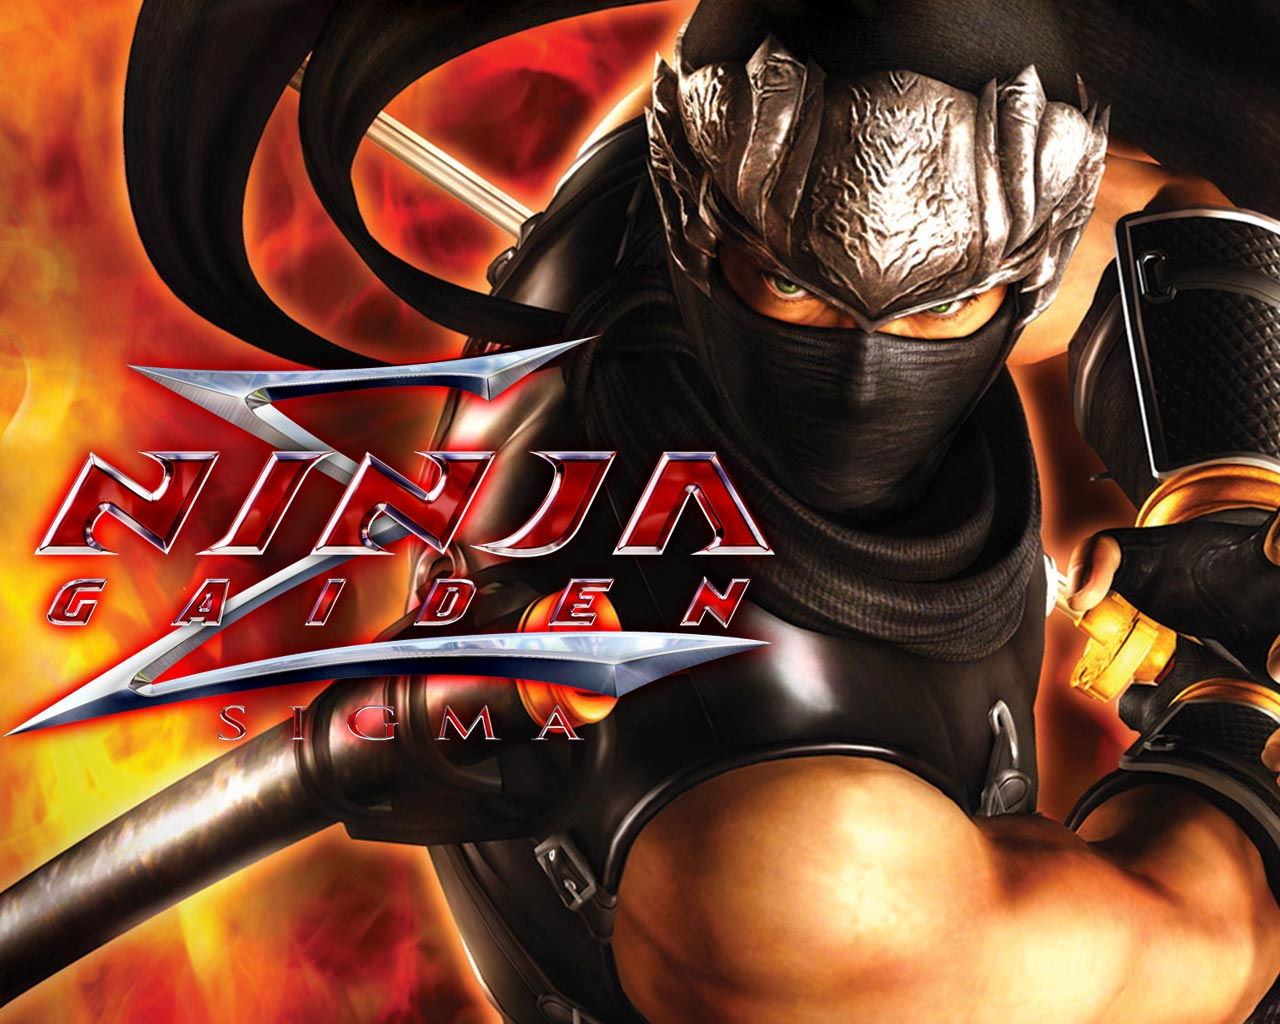 Ninja Gaiden Sigma Video Game 2007 Imdb